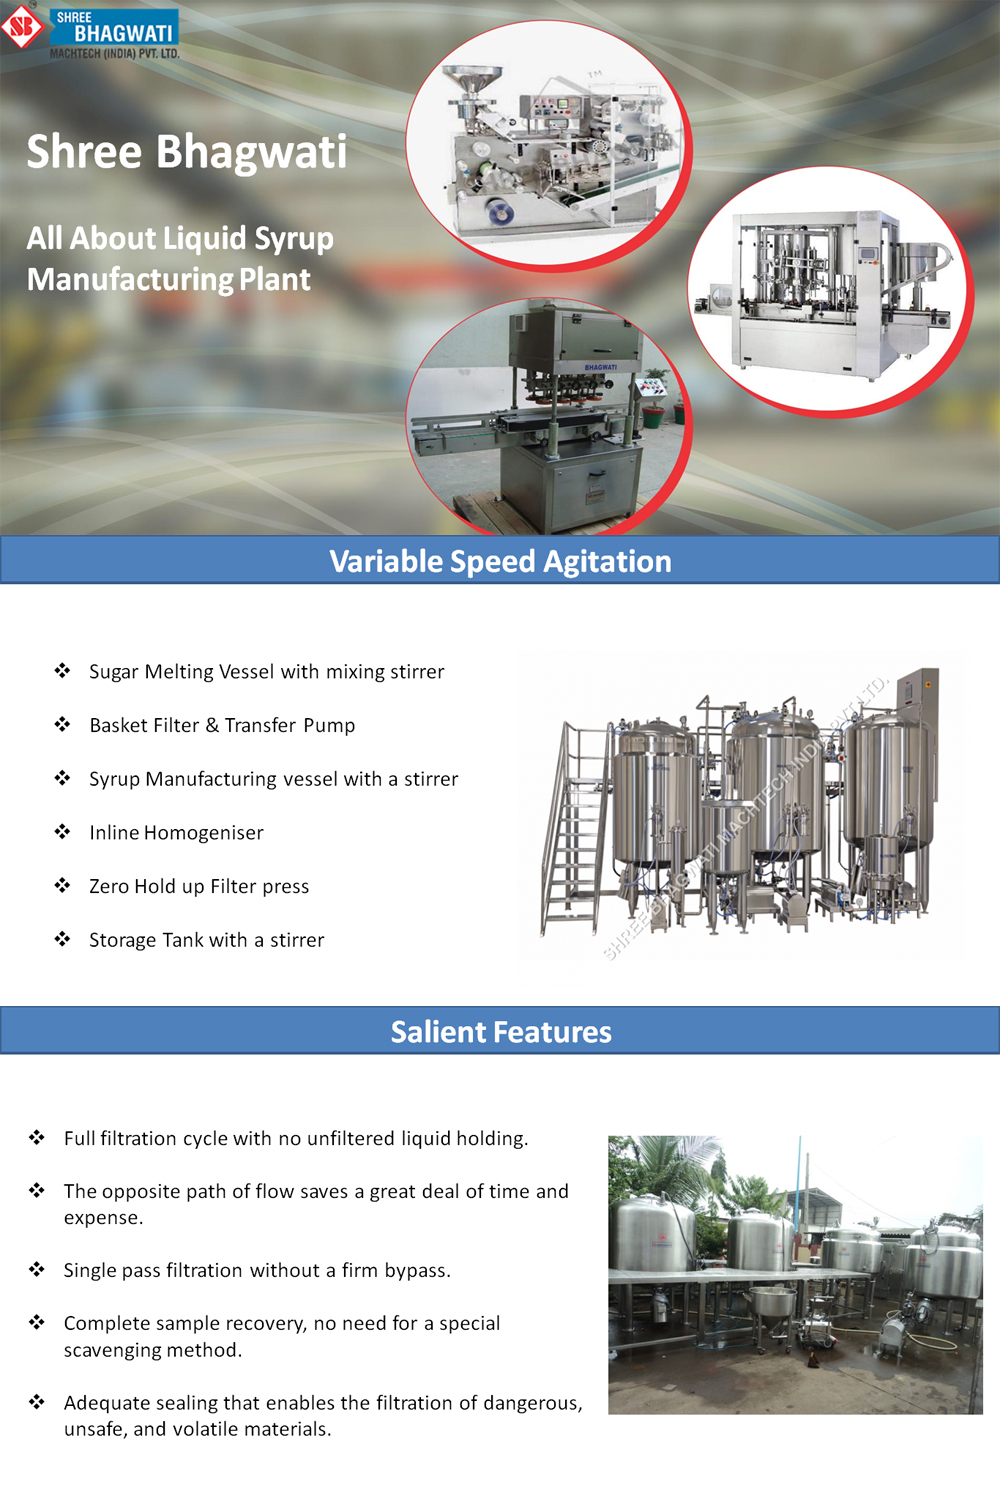 All About Liquid Syrup Manufacturing Plant